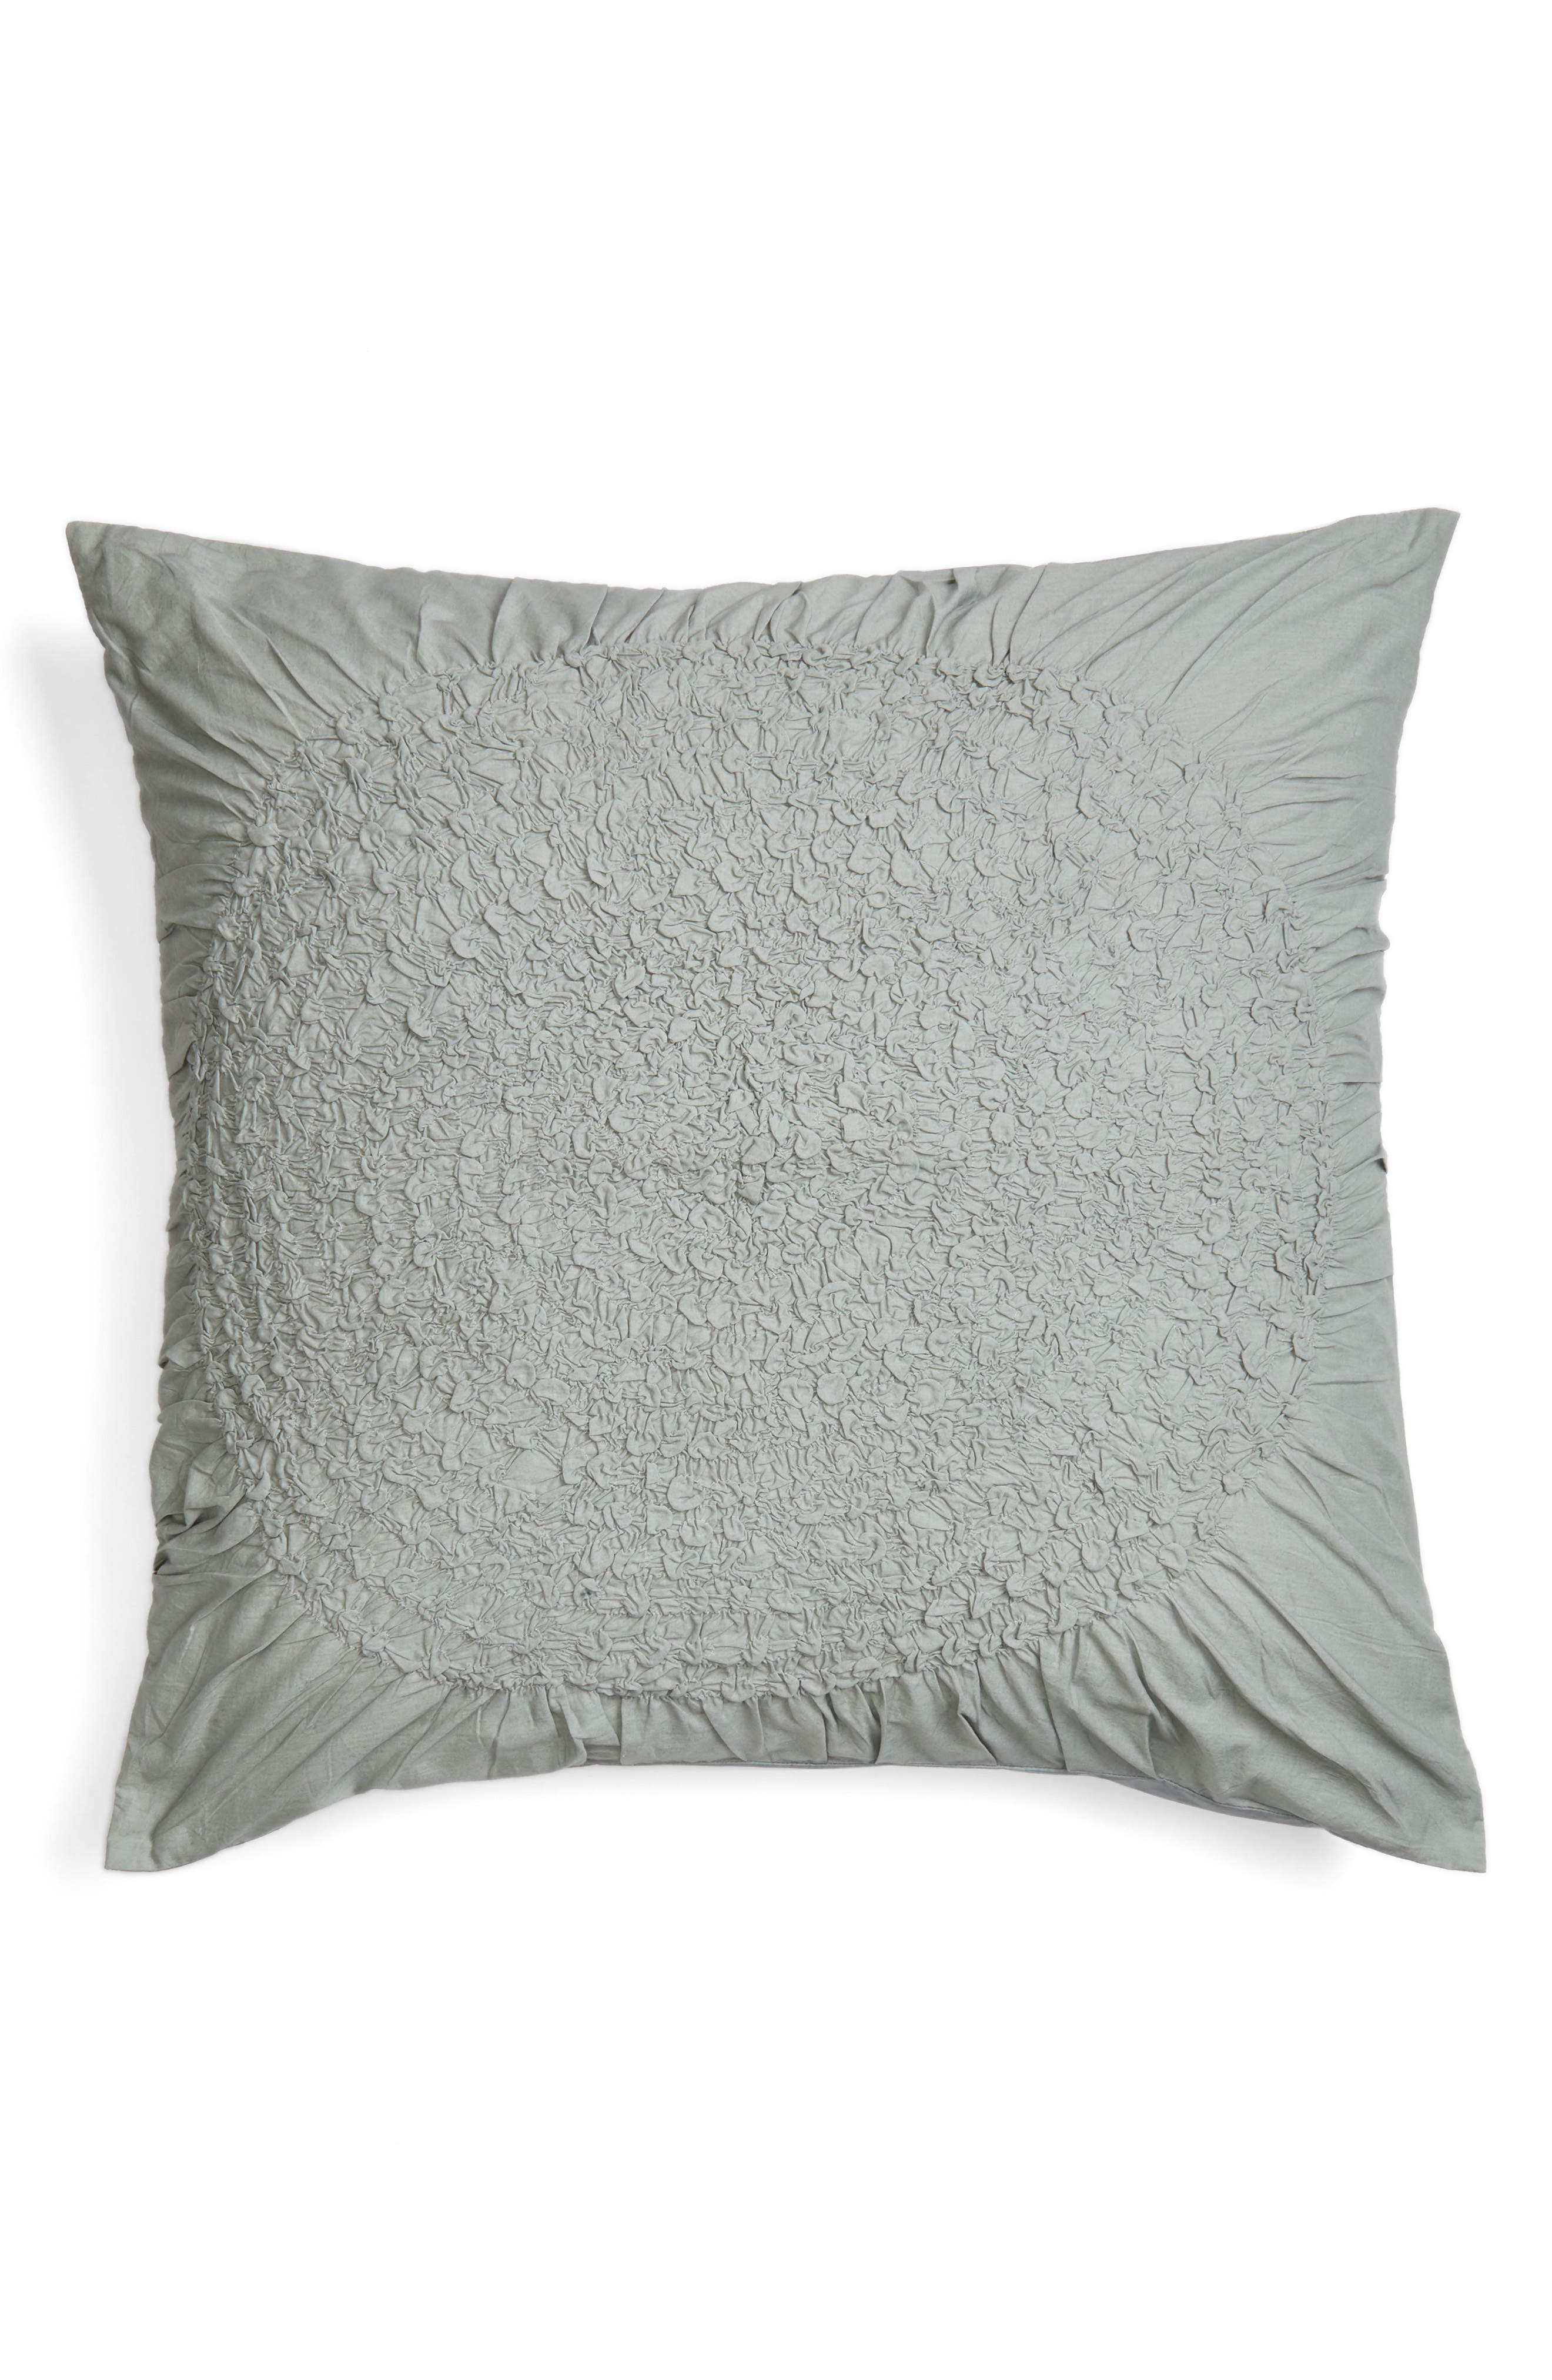 Nordstrom at Home 'Chloe' Euro Sham